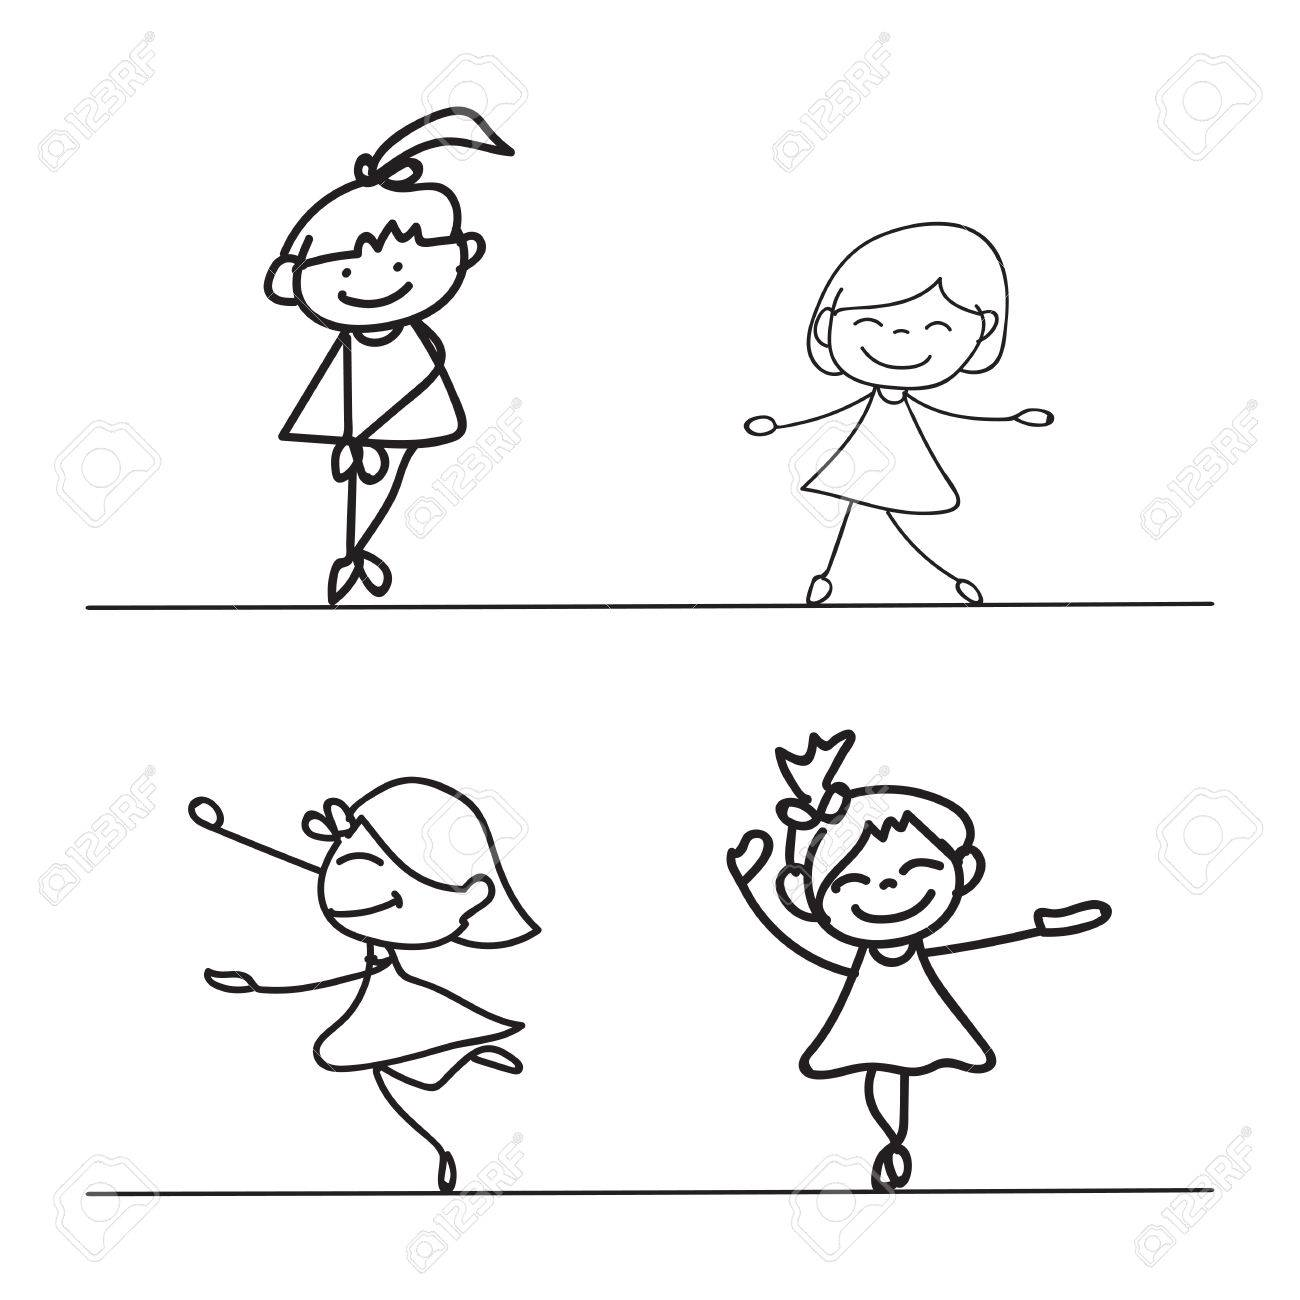 1300x1300 Hand Drawings Cartoon Happy Kid Happiness Concept Royalty Free